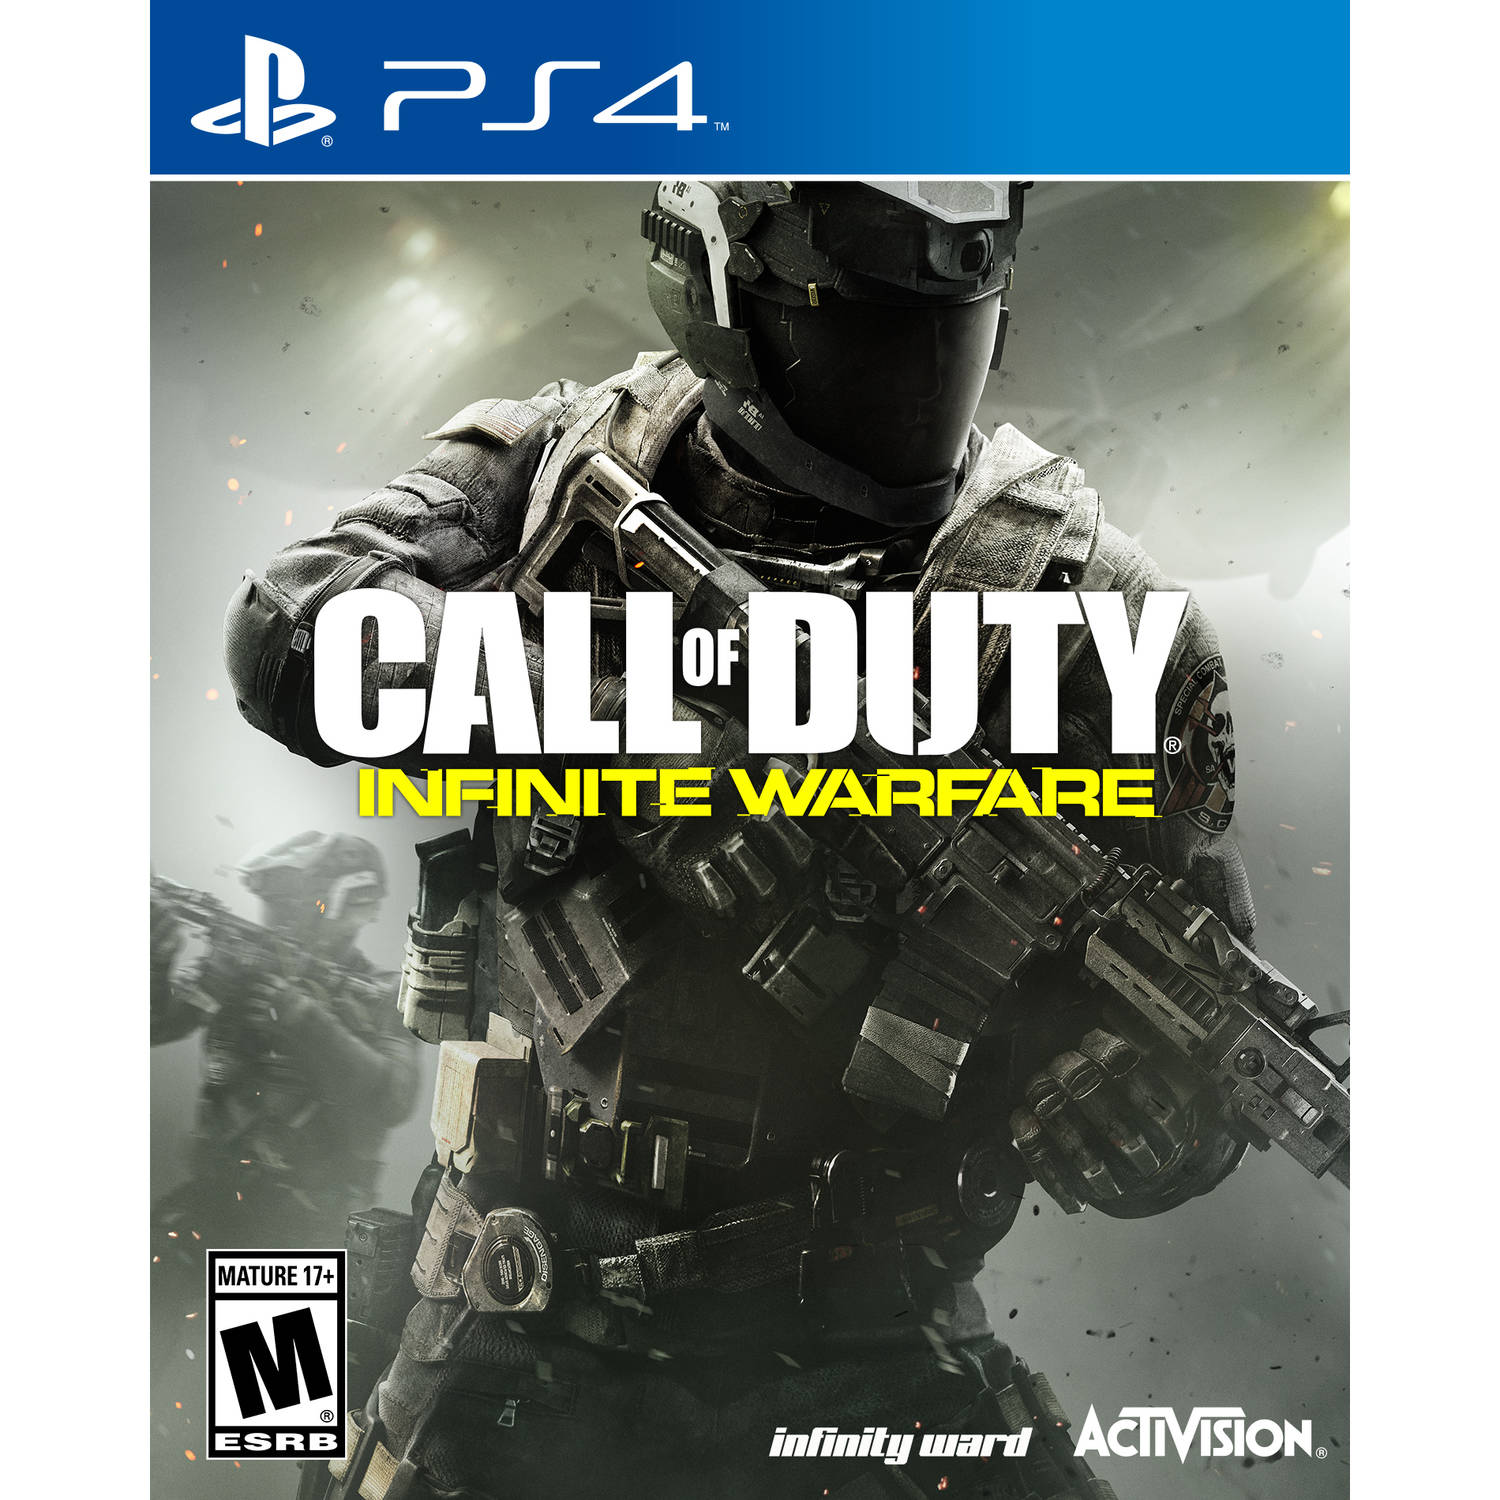 Call of Duty: Infinite Warfare, Activision, PlayStation 4, 047875878556